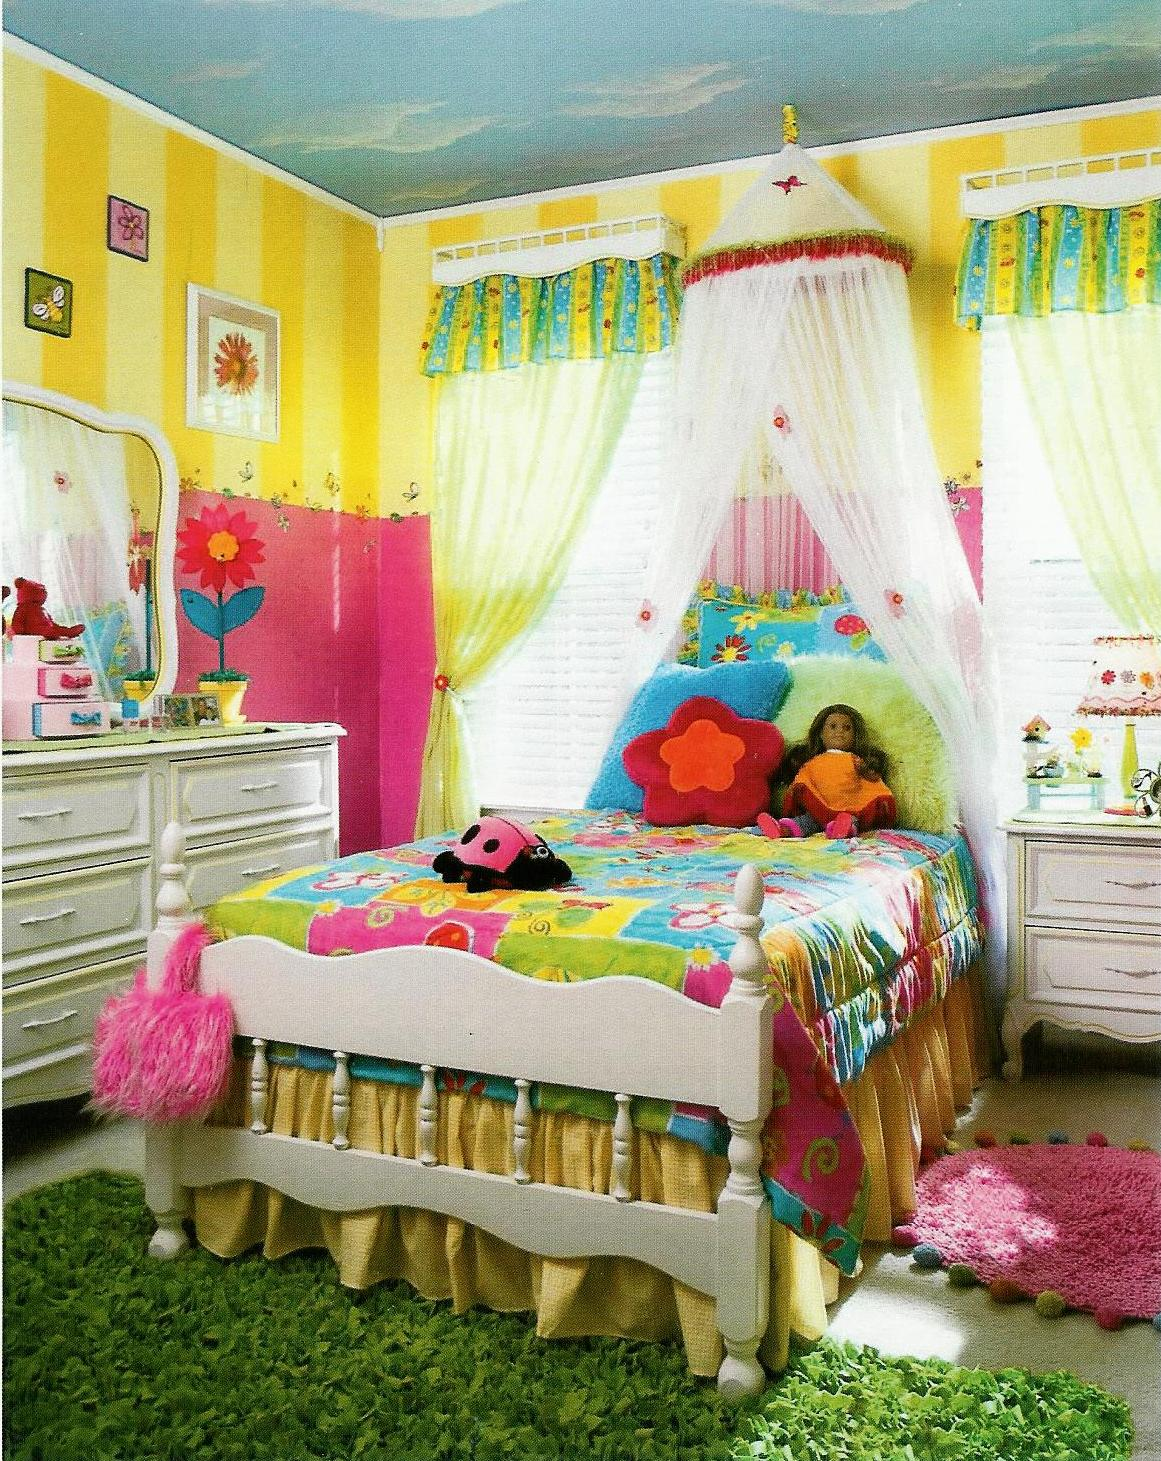 Kids rooms decorations 2017 grasscloth wallpaper for Kids room makeover